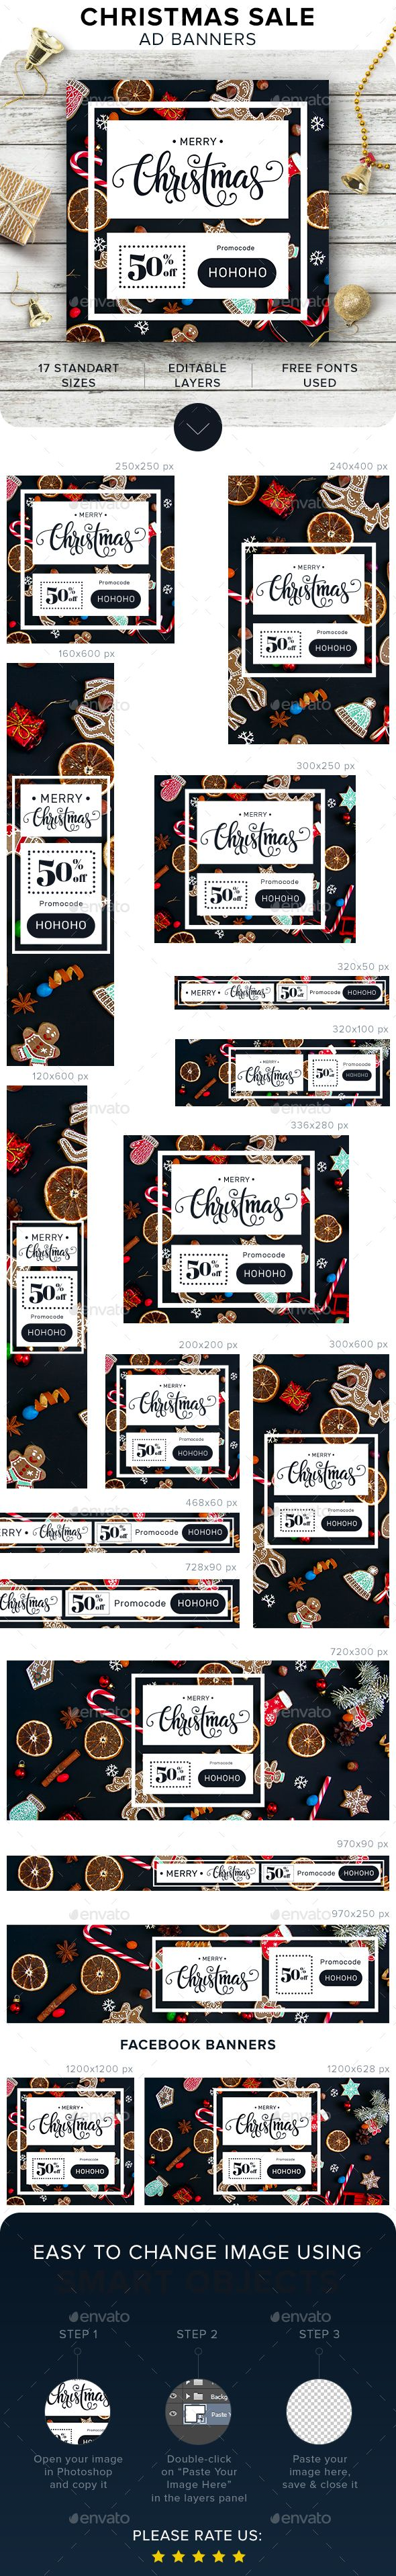 Merry Christmas Banners, web design template for ad banners Google AdWords